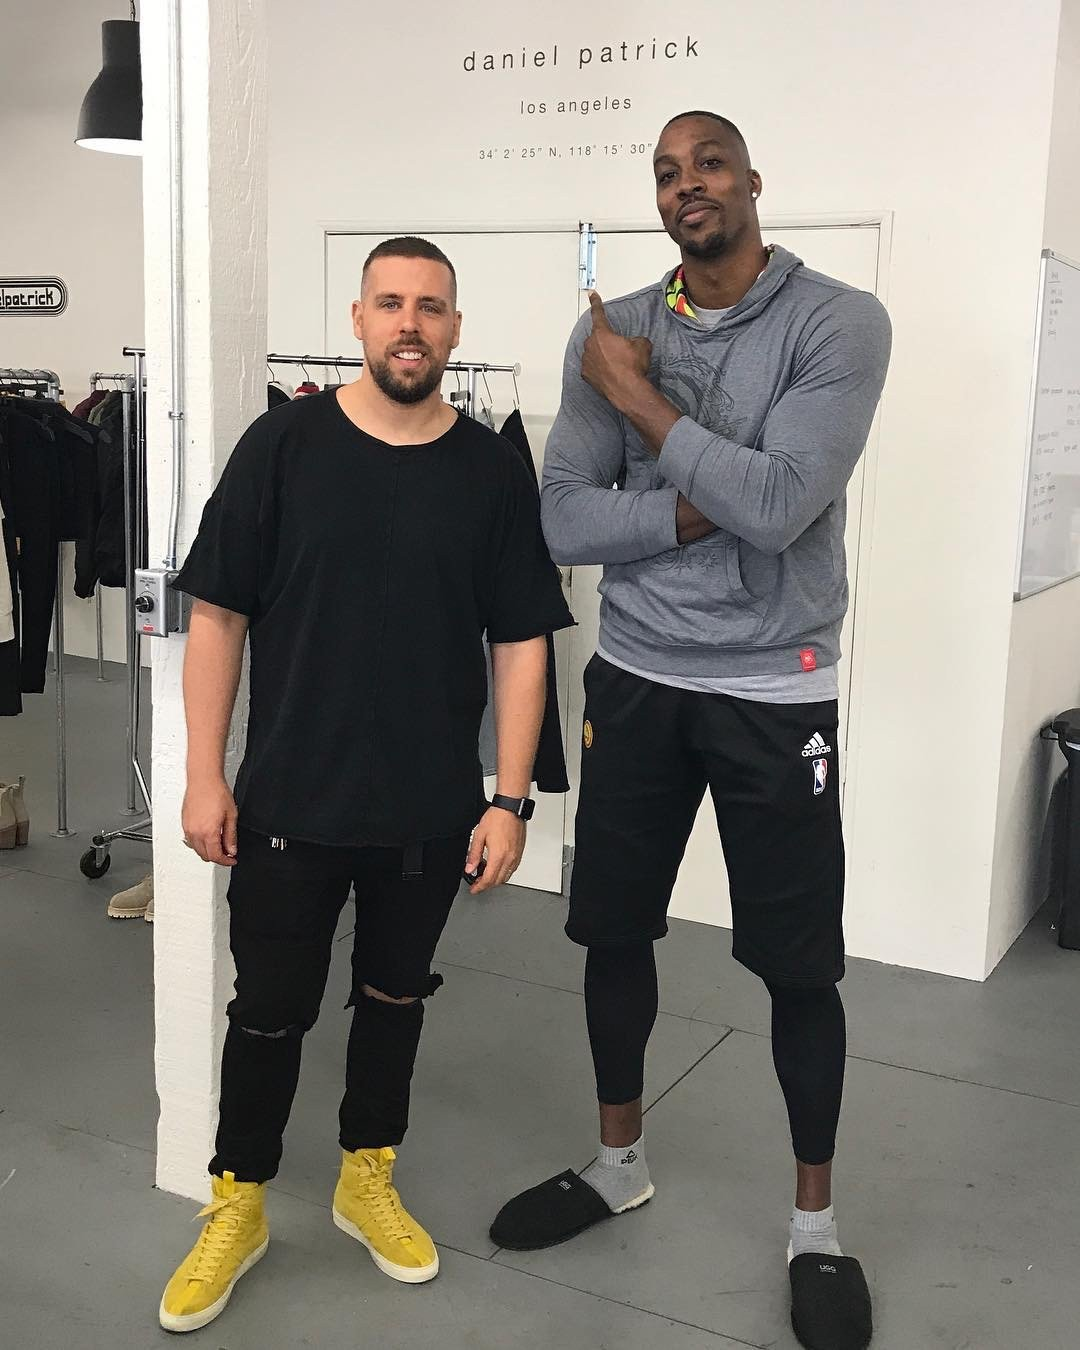 Atlanta Hawks center Dwight Howard with Daniel Patrick in Los Angeles, June 2017